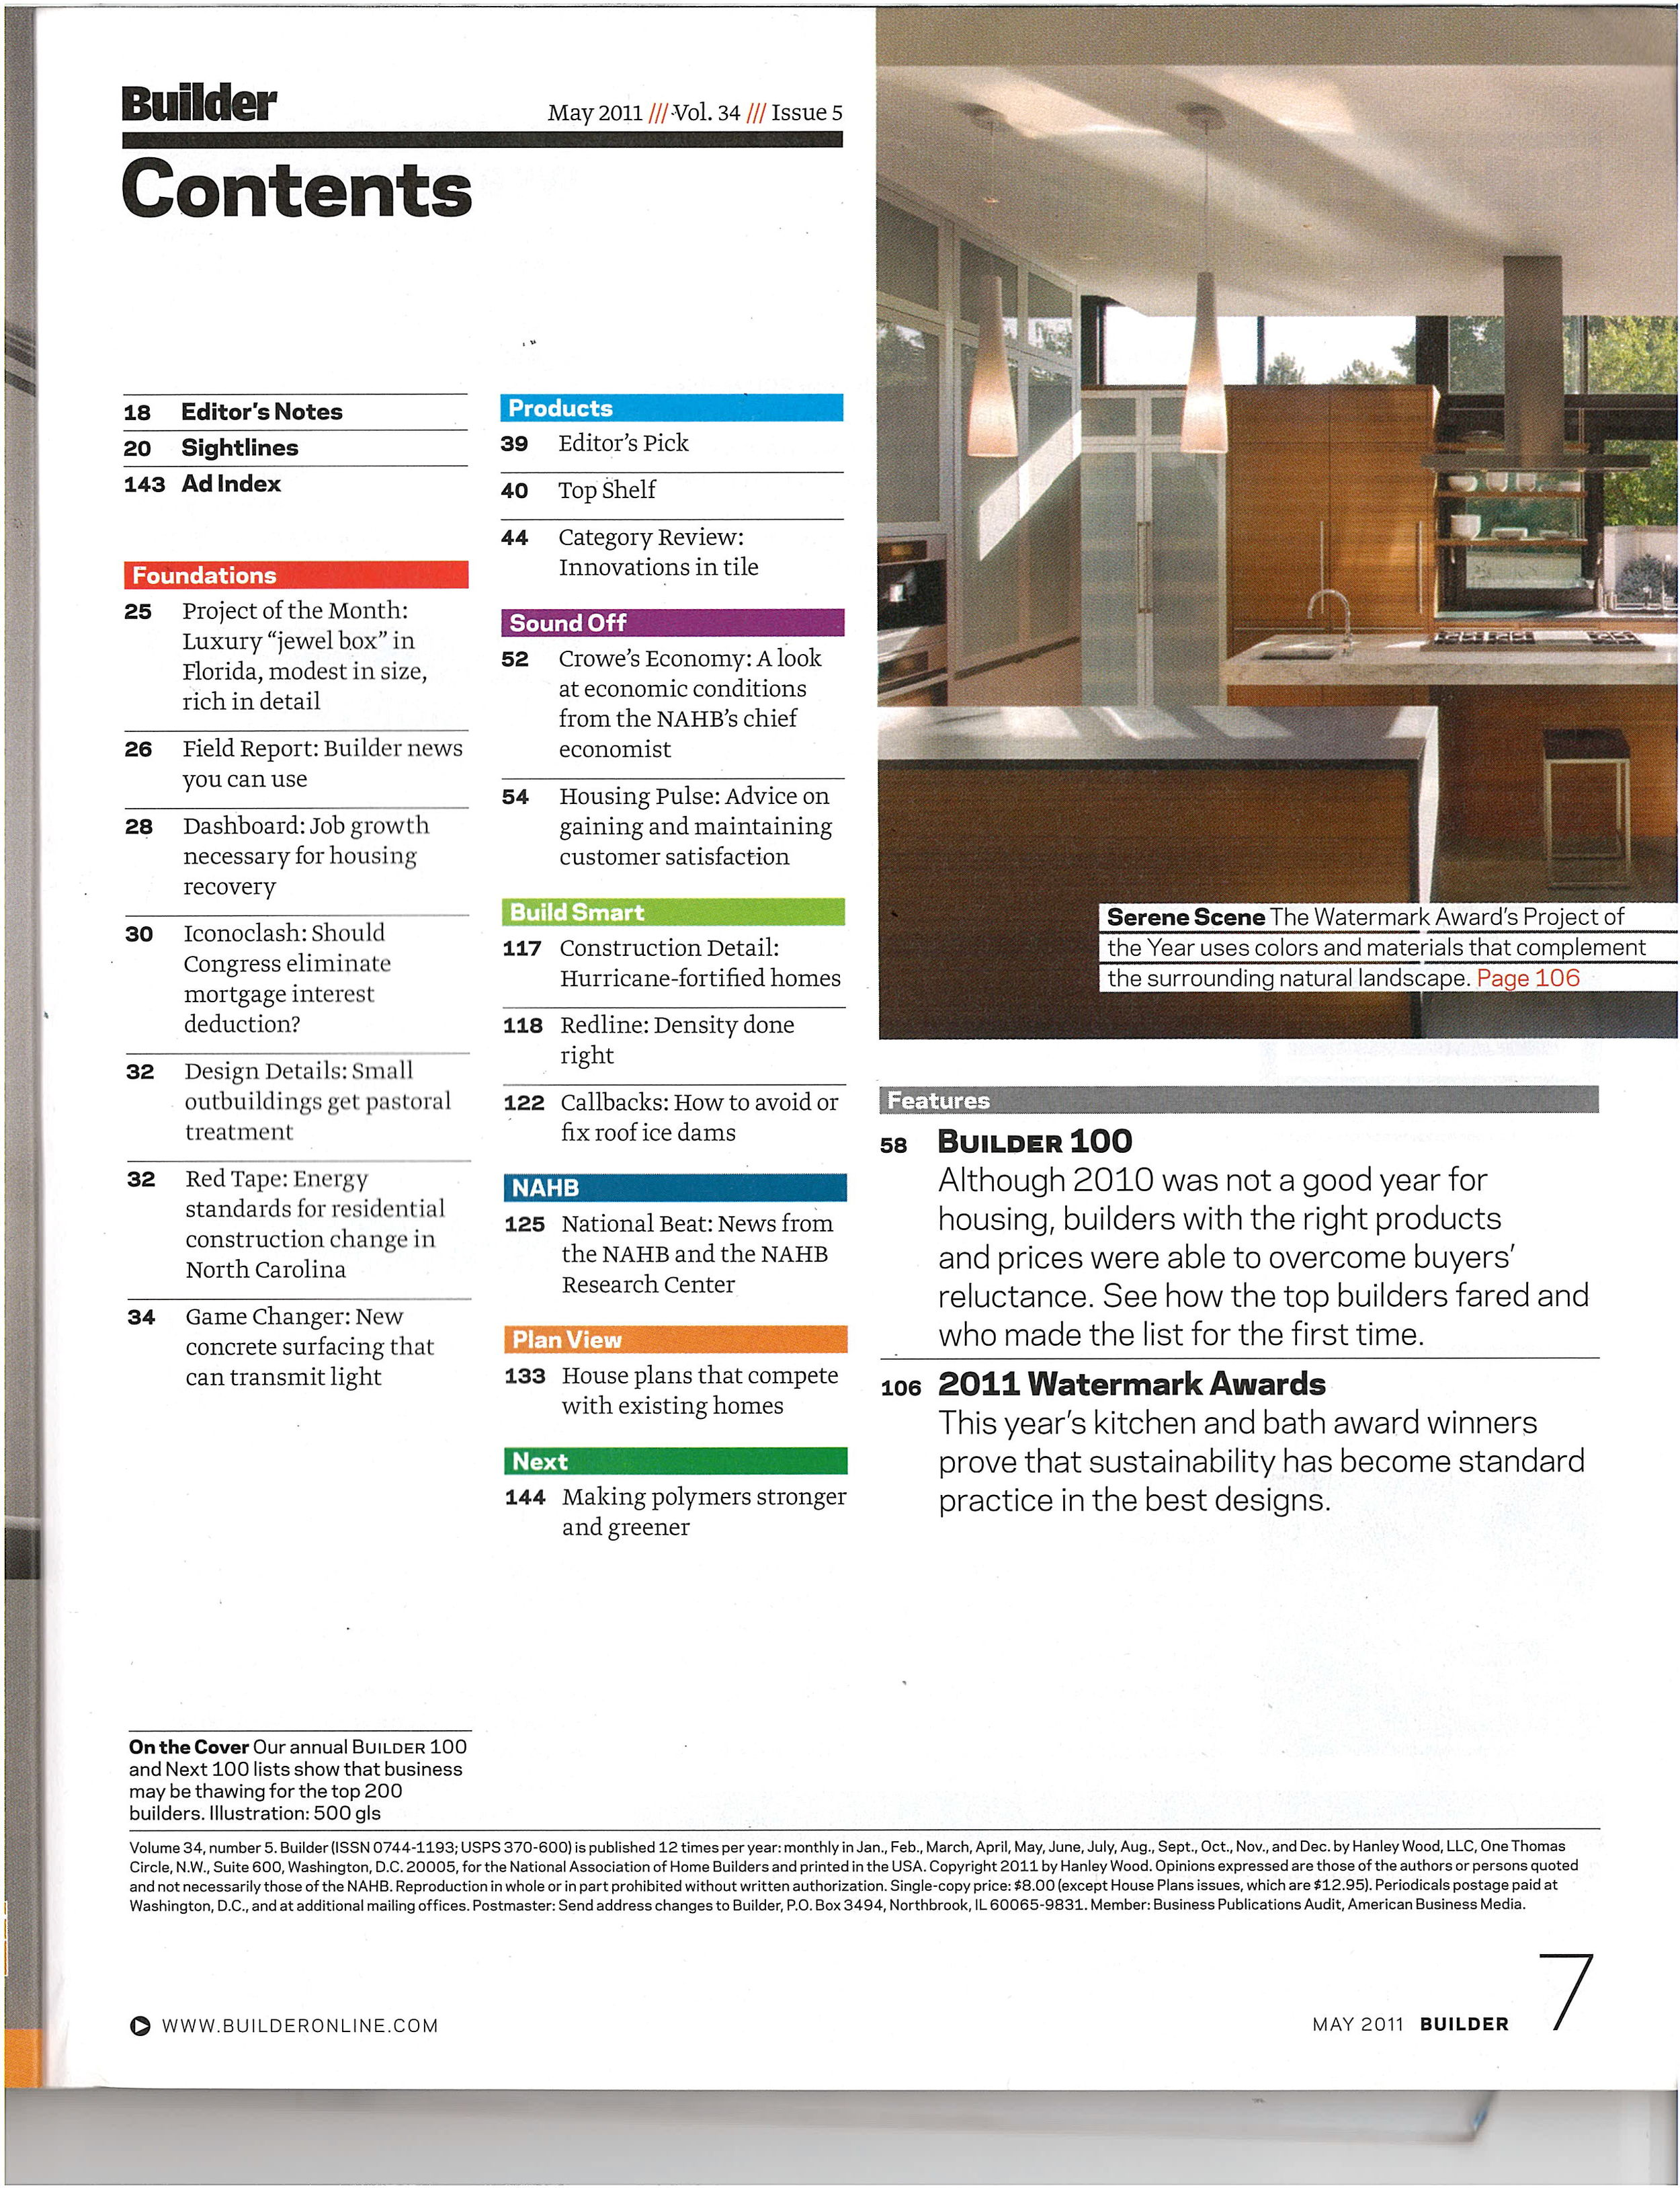 05-2011_BuilderMagazine_WatermarkAwards_Page_2.jpg